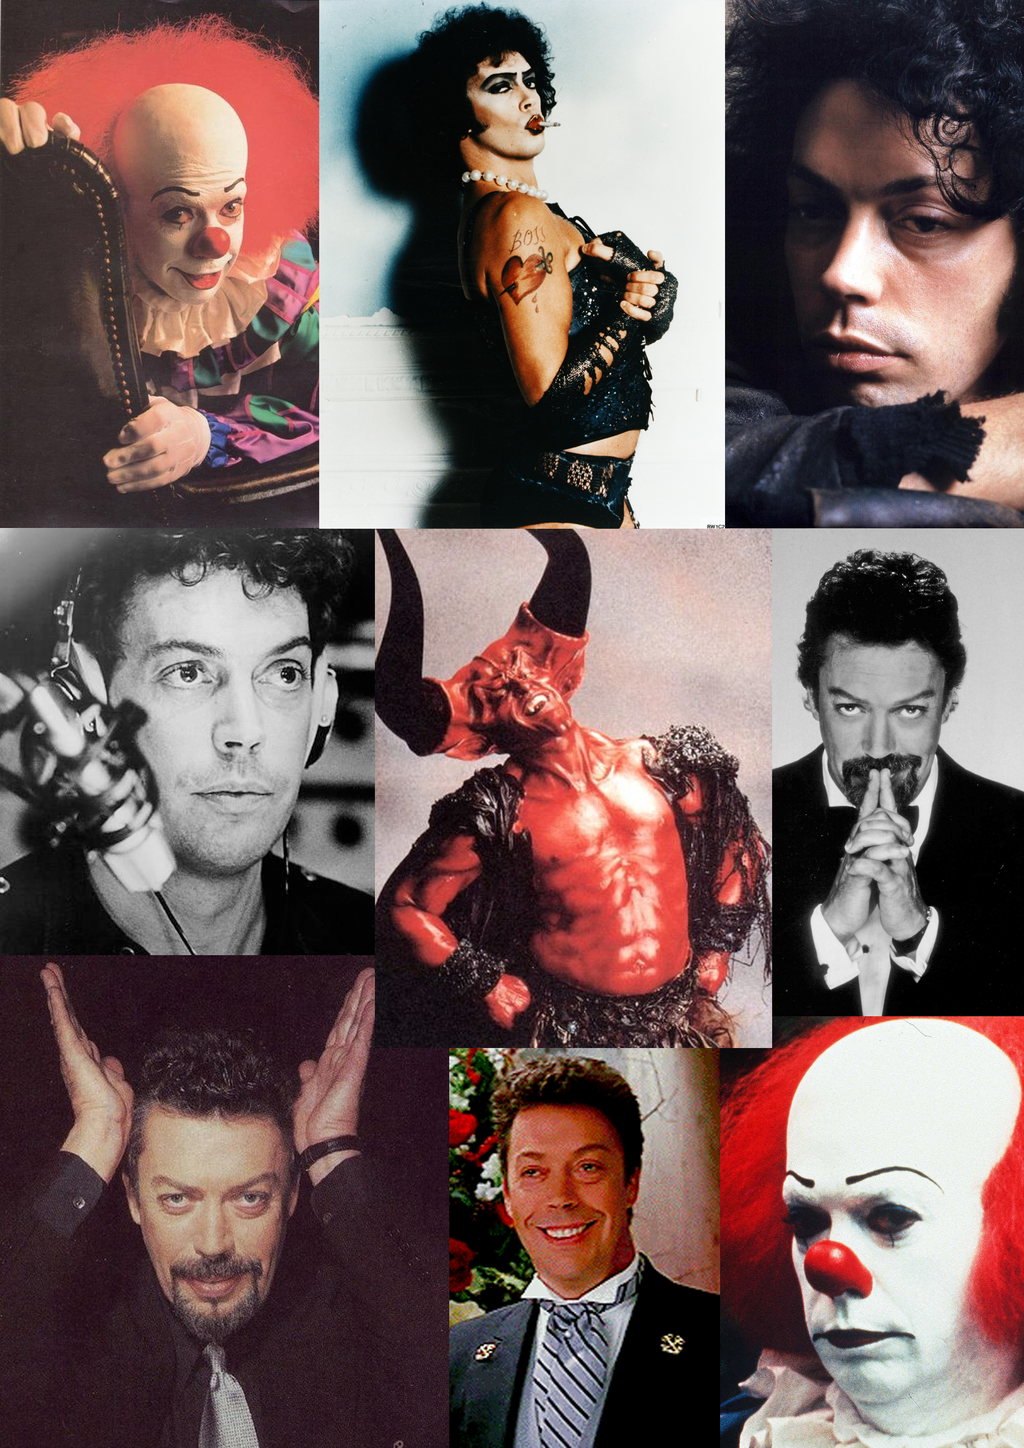 tim_curry_collage_by_ichigooneechan66-d7ot4bh.png